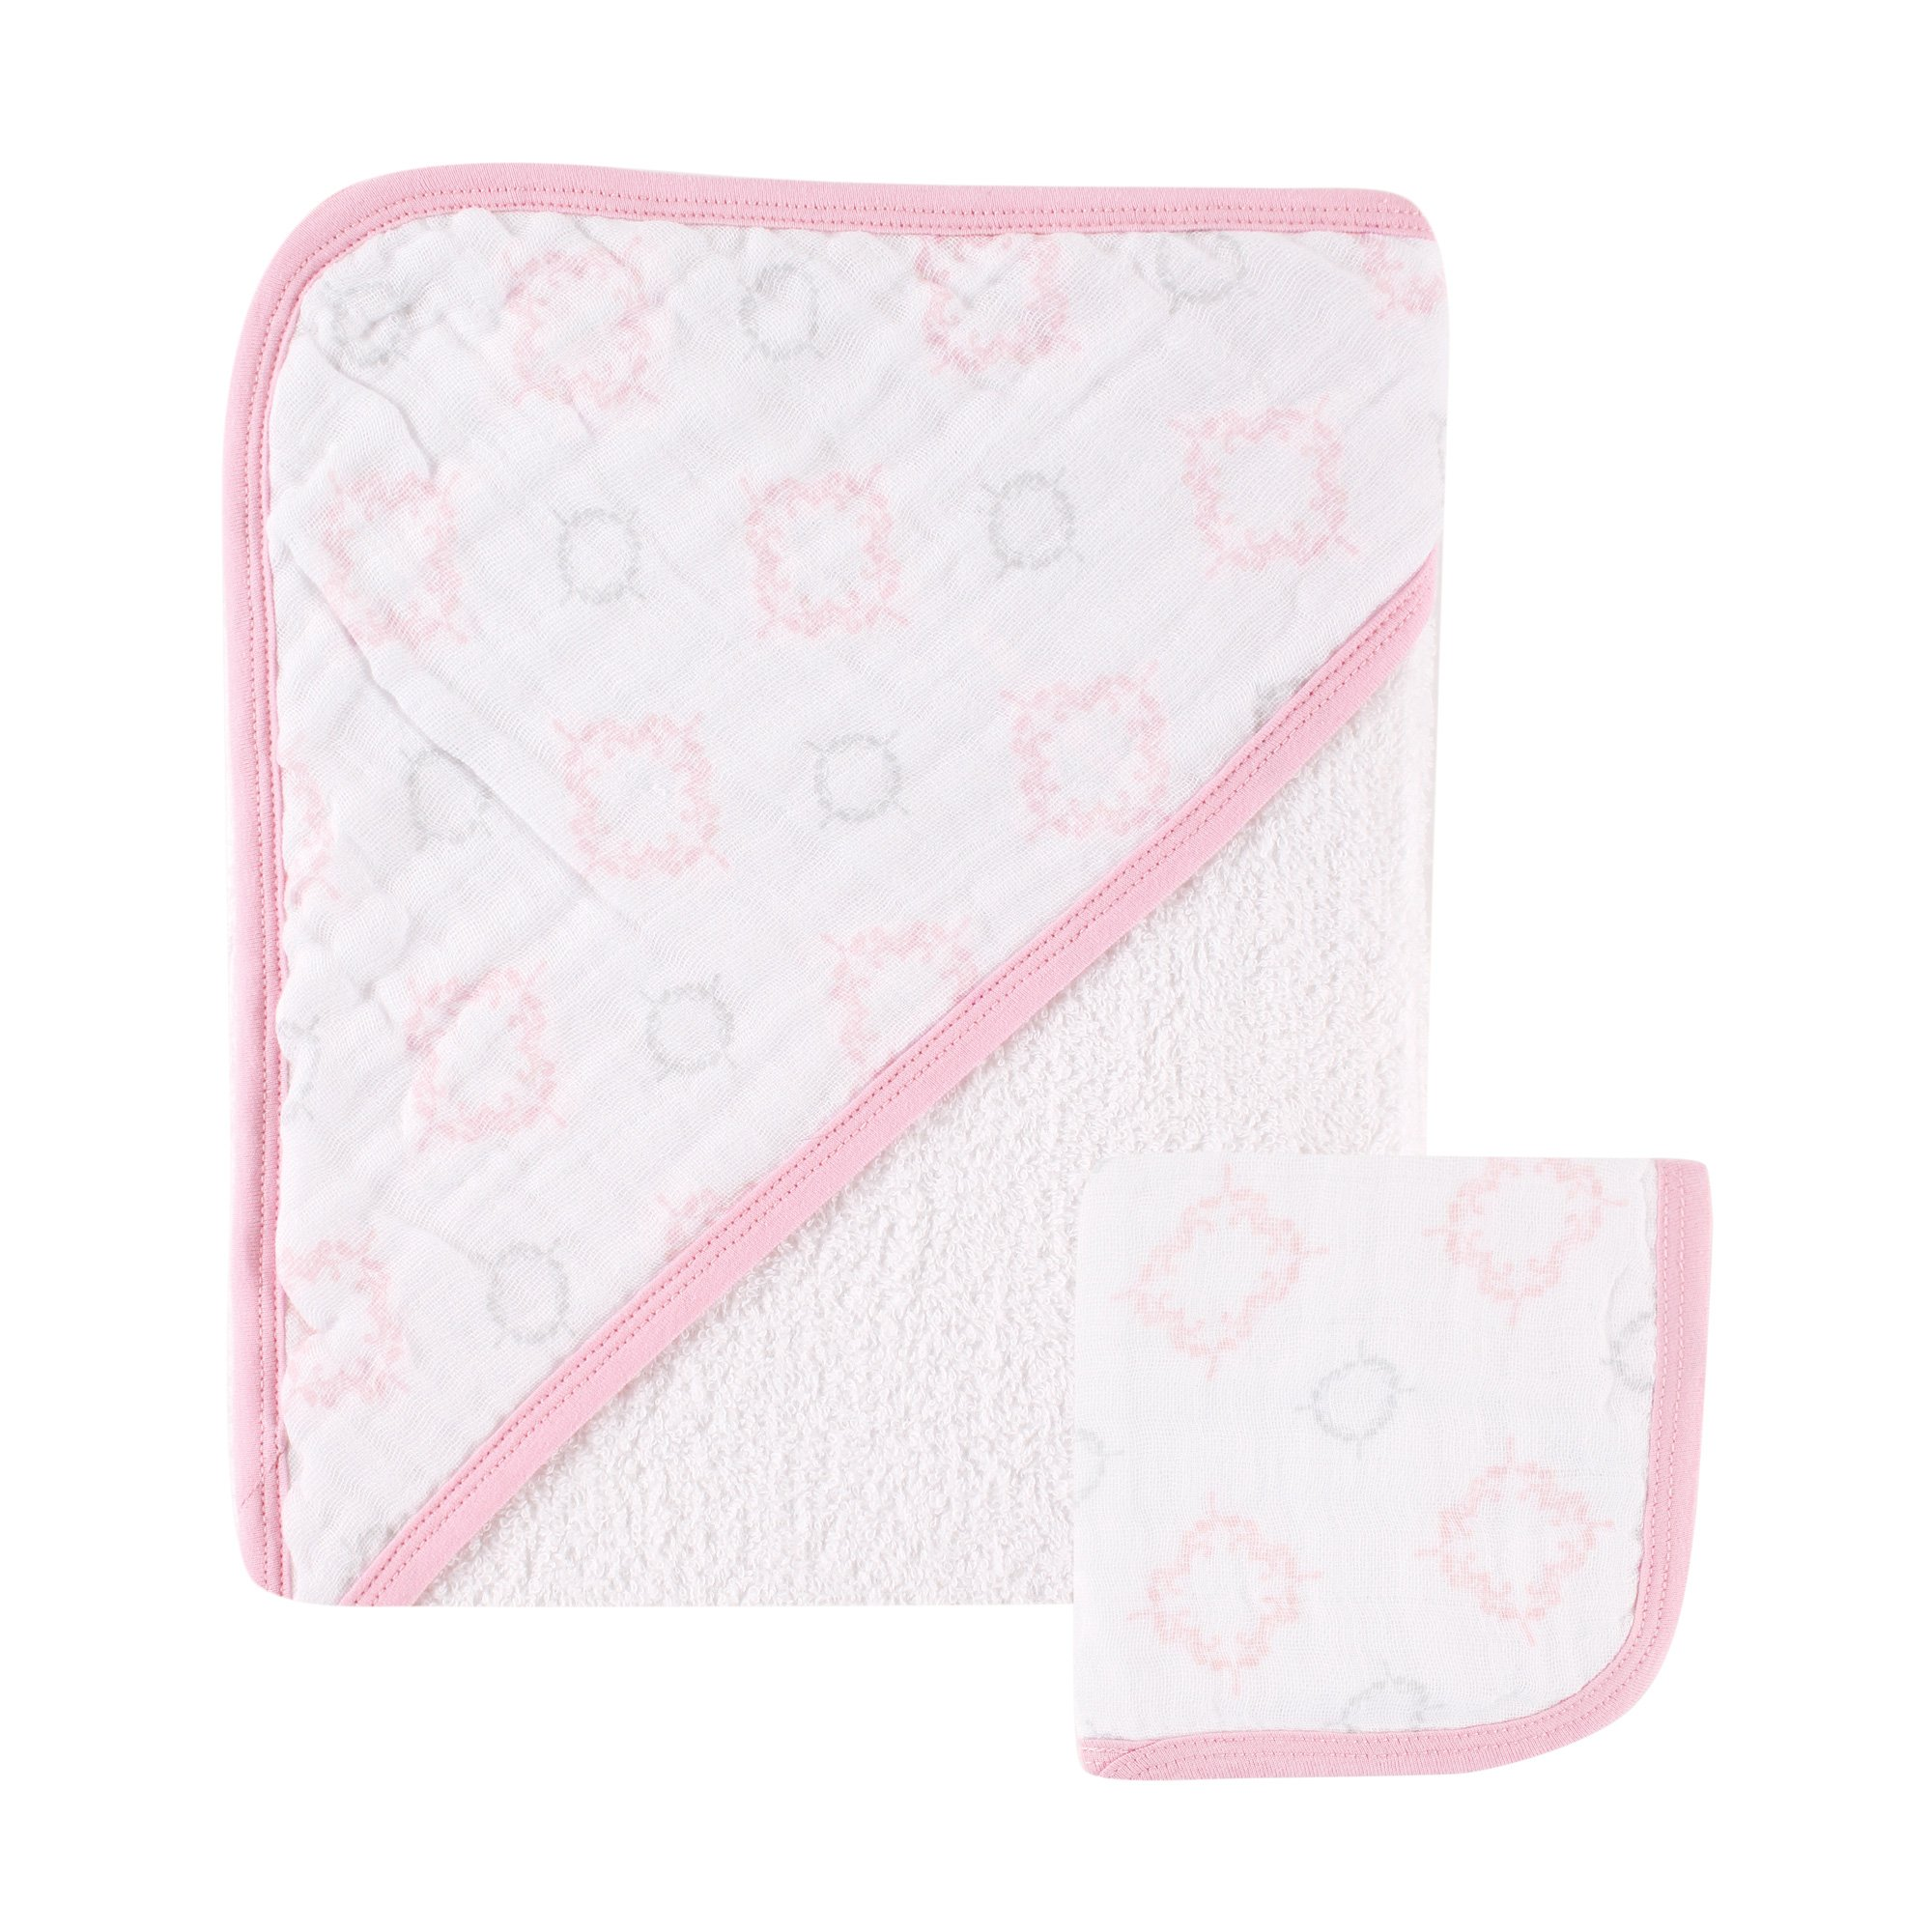 Hudson Baby Muslin Hooded Towel with Washcloth, Pink Damask